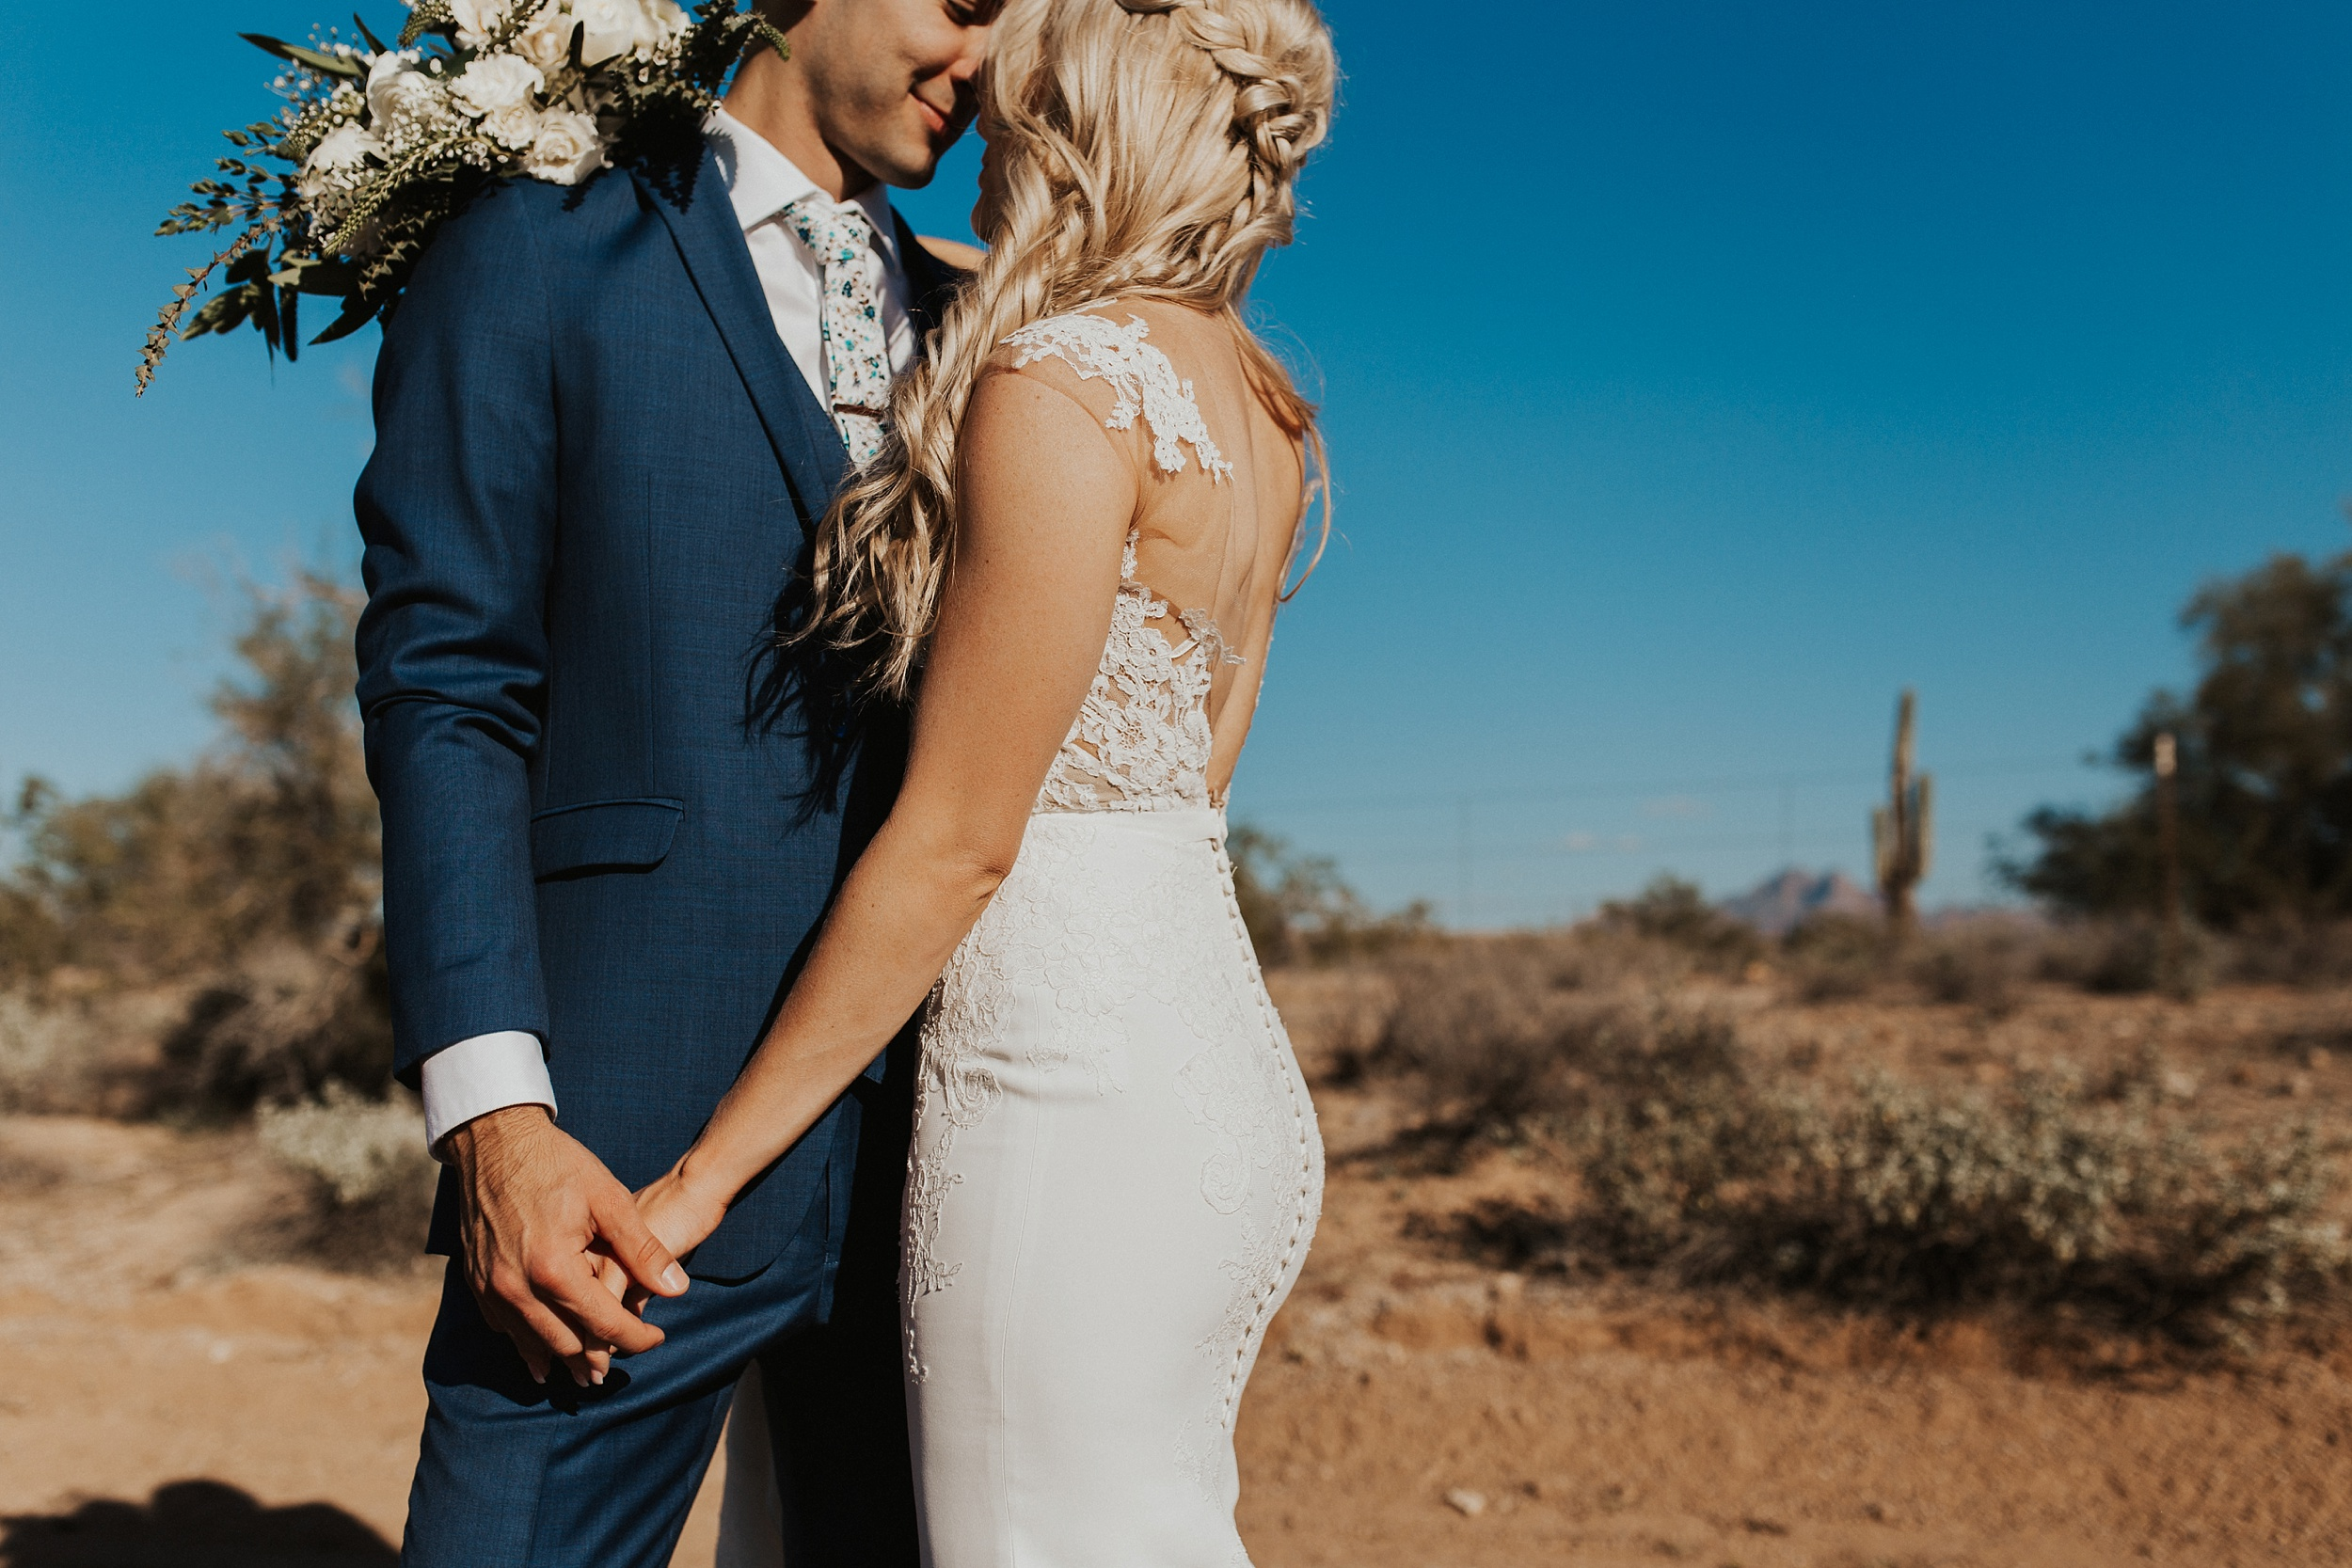 Meg+Bubba_Wedding_Bride+Groom_Portraits_Arizona-38.jpg